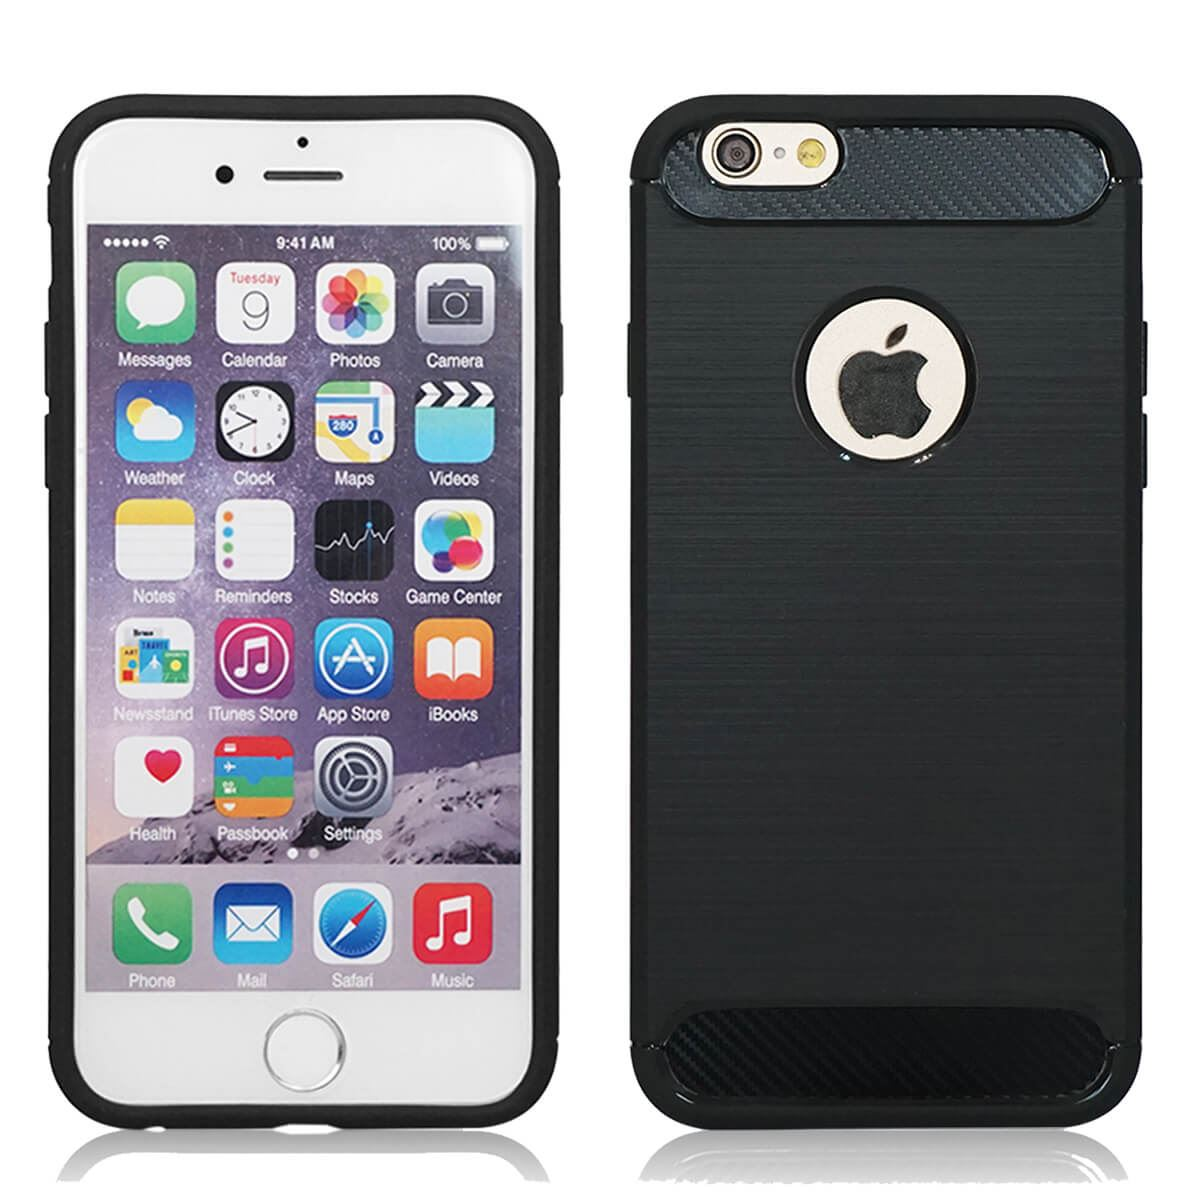 Shockproof-Bumper-Case-Apple-iPhone-10-X-8-7-6s-Se-5s-5-Luxury-Ultra-Slim-Cover thumbnail 3